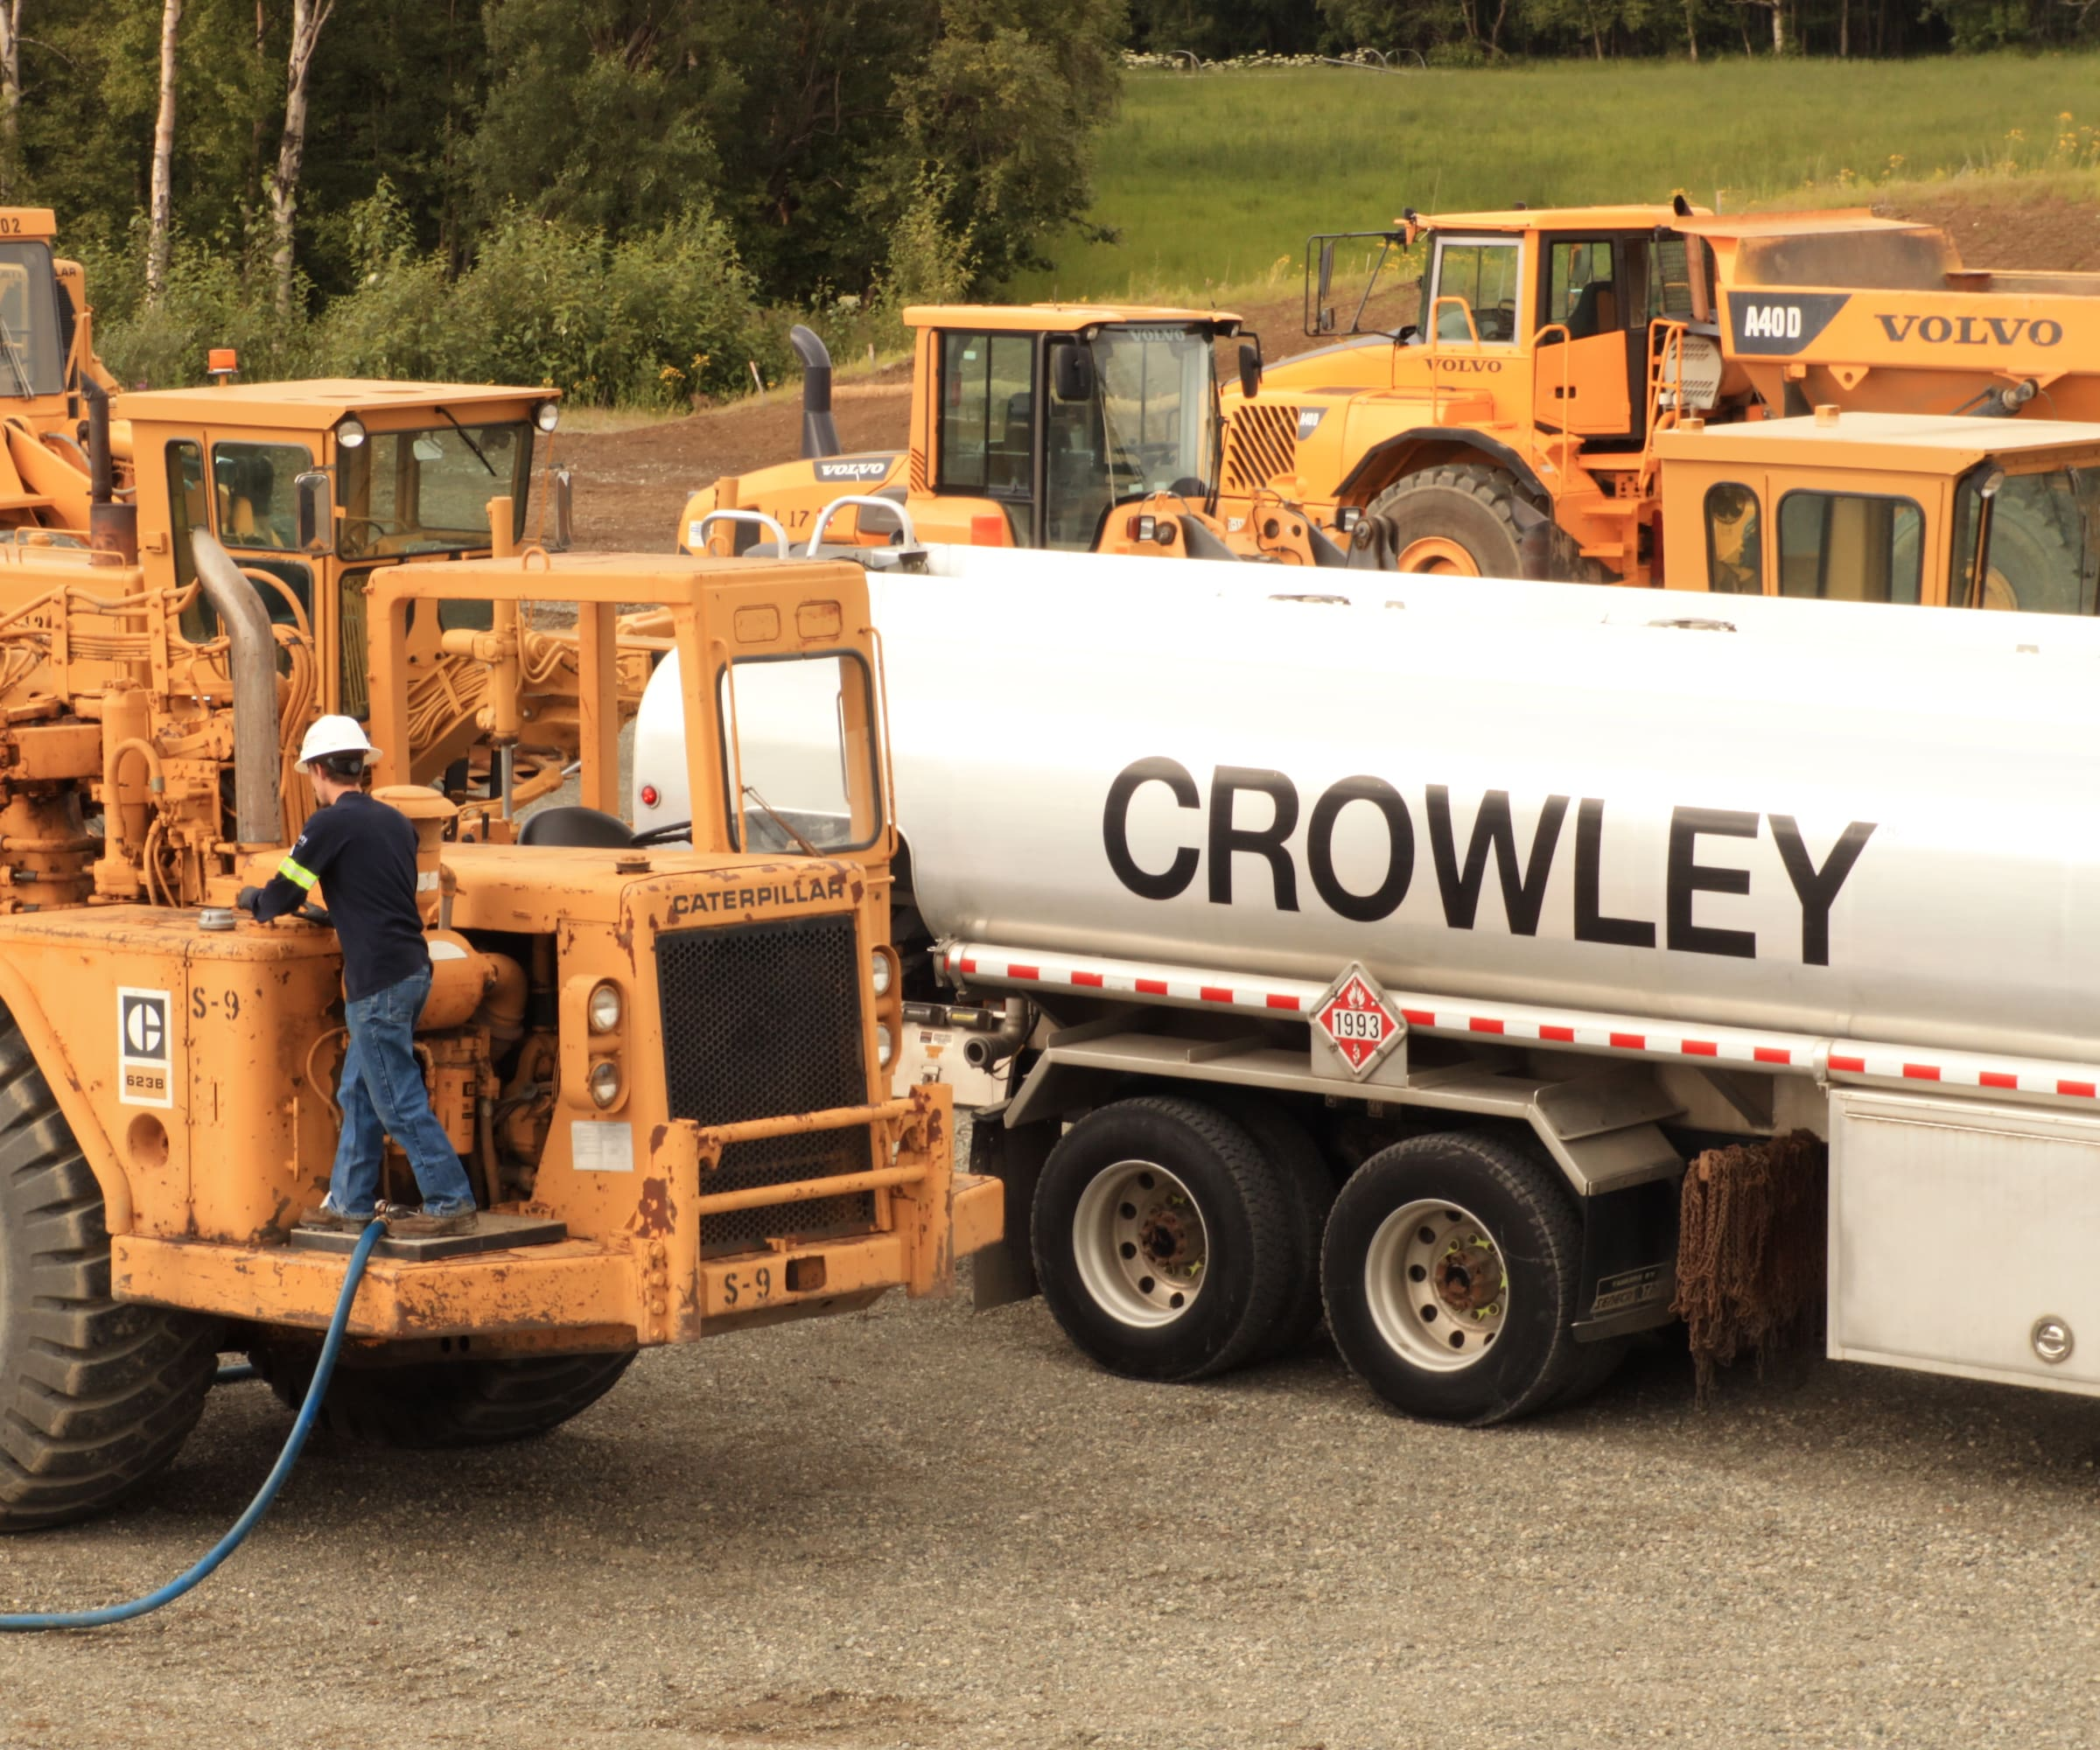 crowley fuels transportation construction marine hero